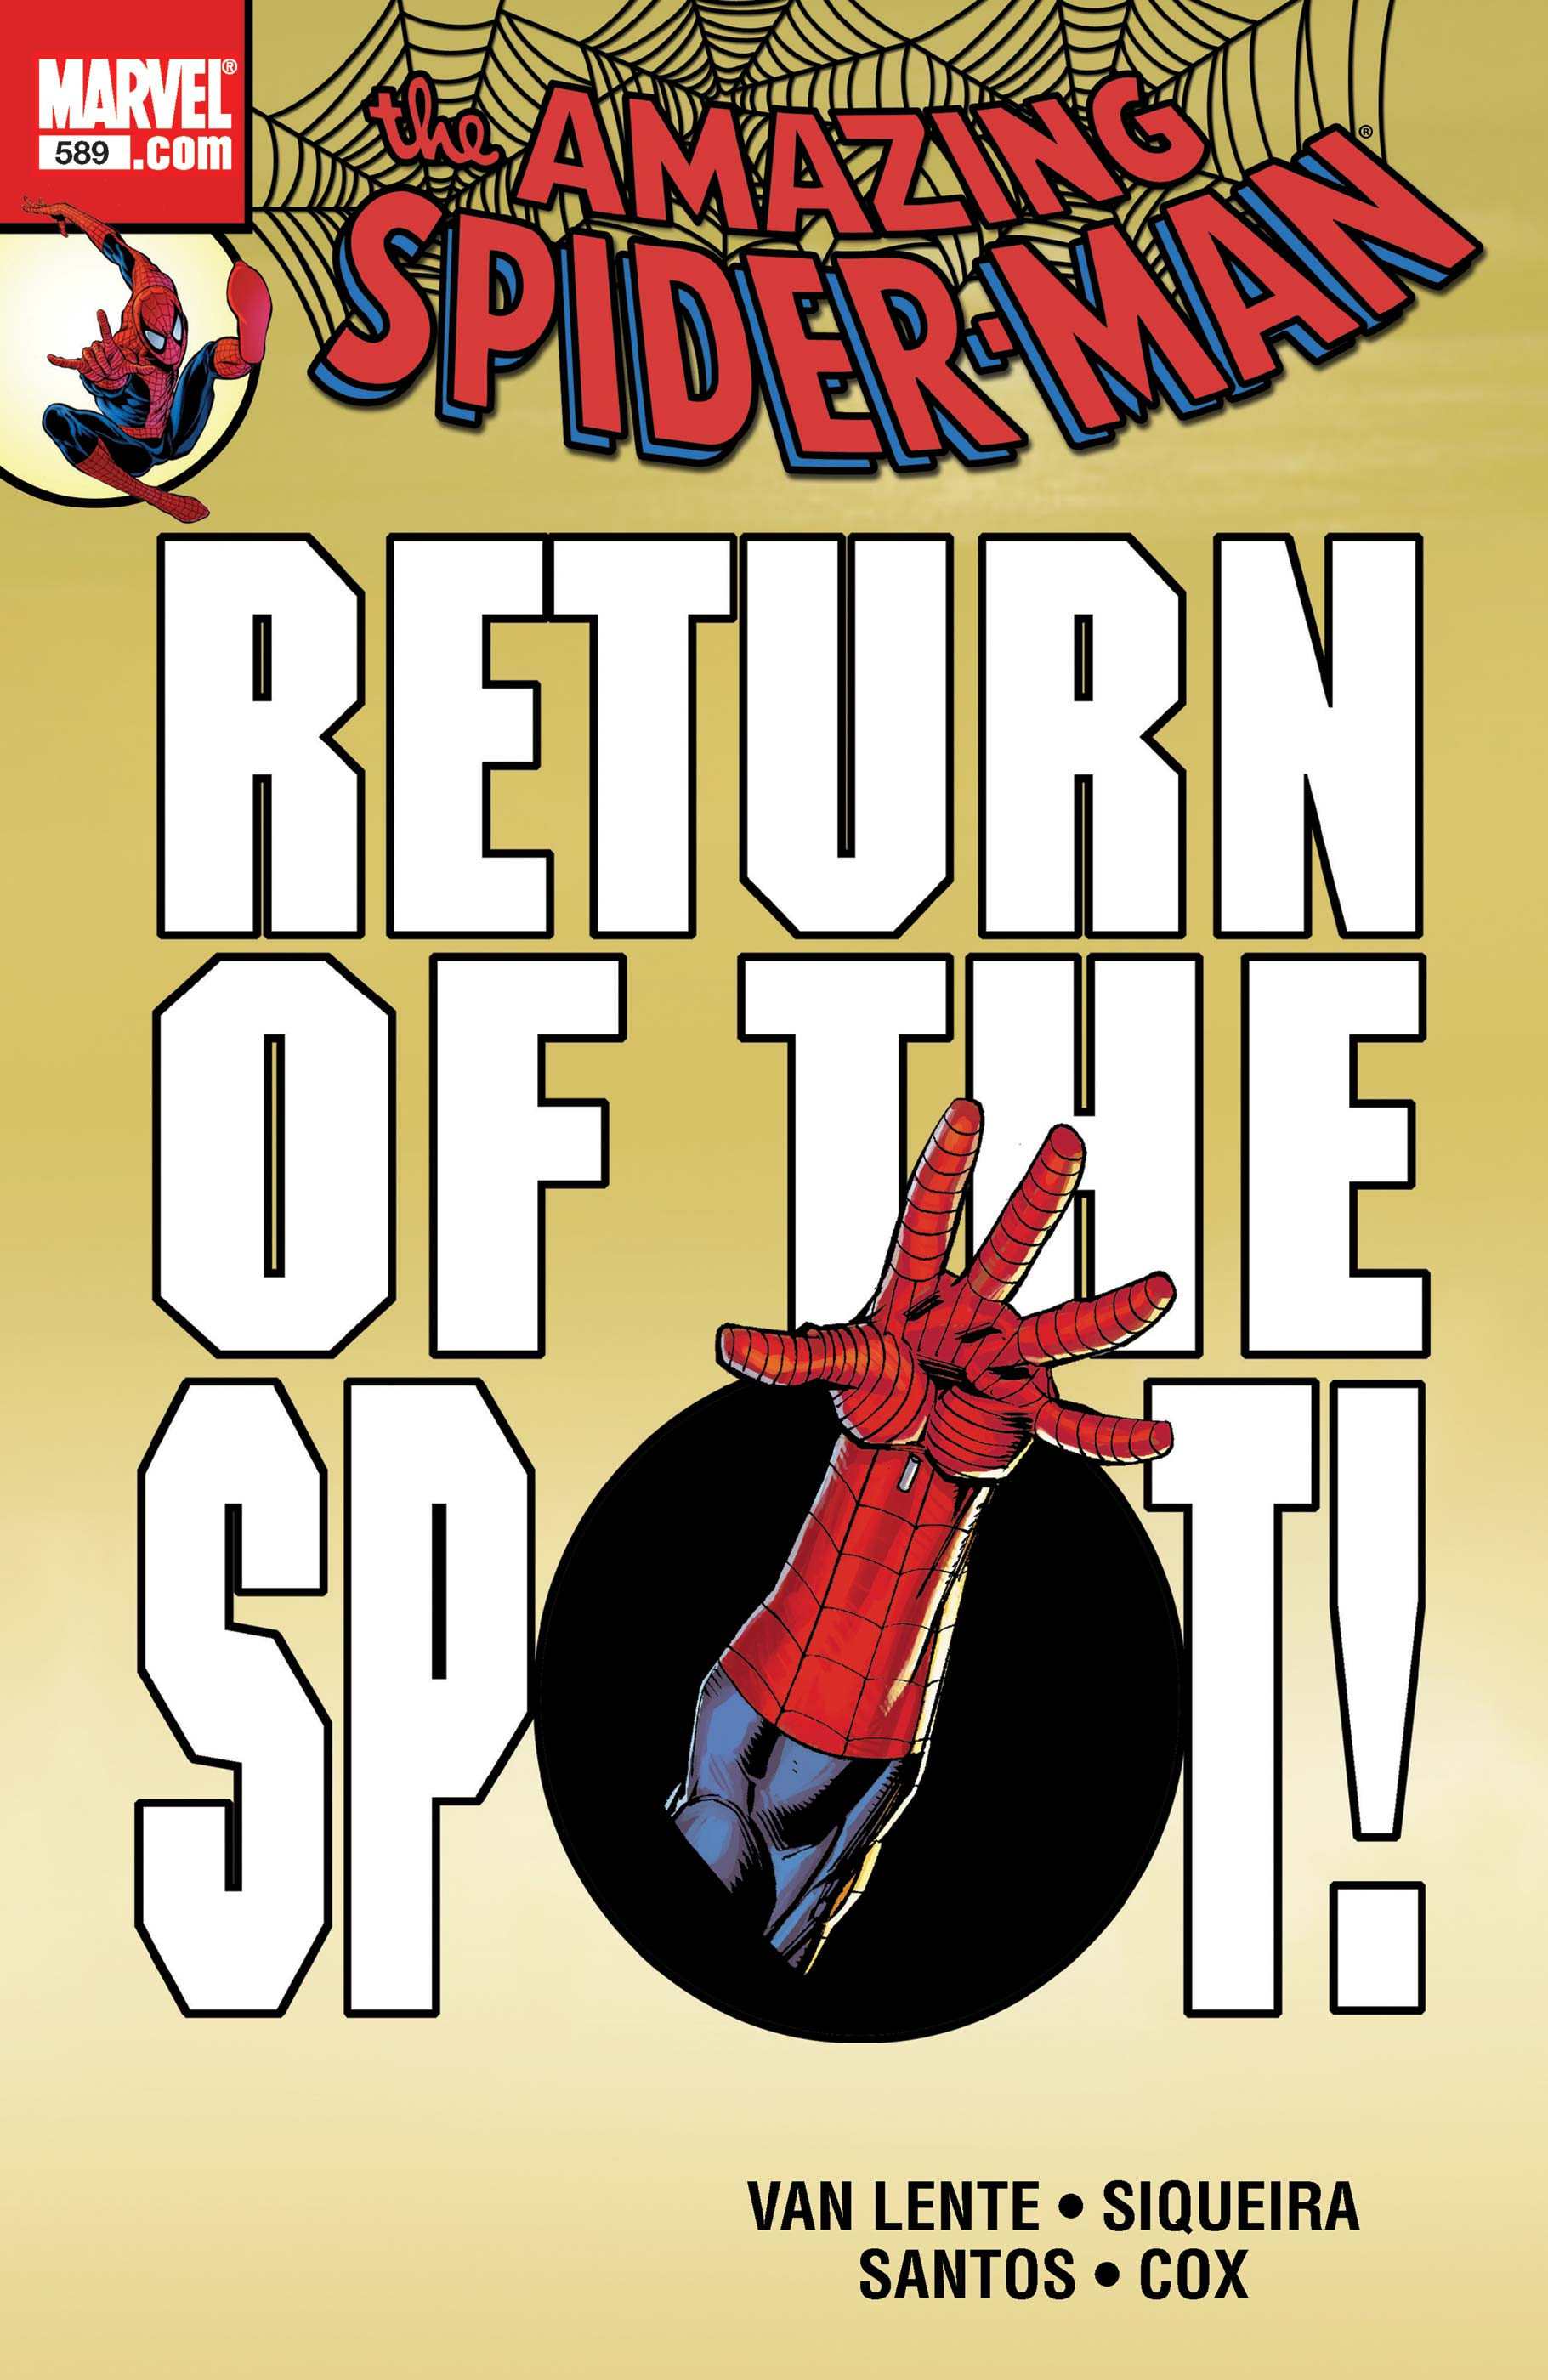 Amazing Spider-Man (1999) #589